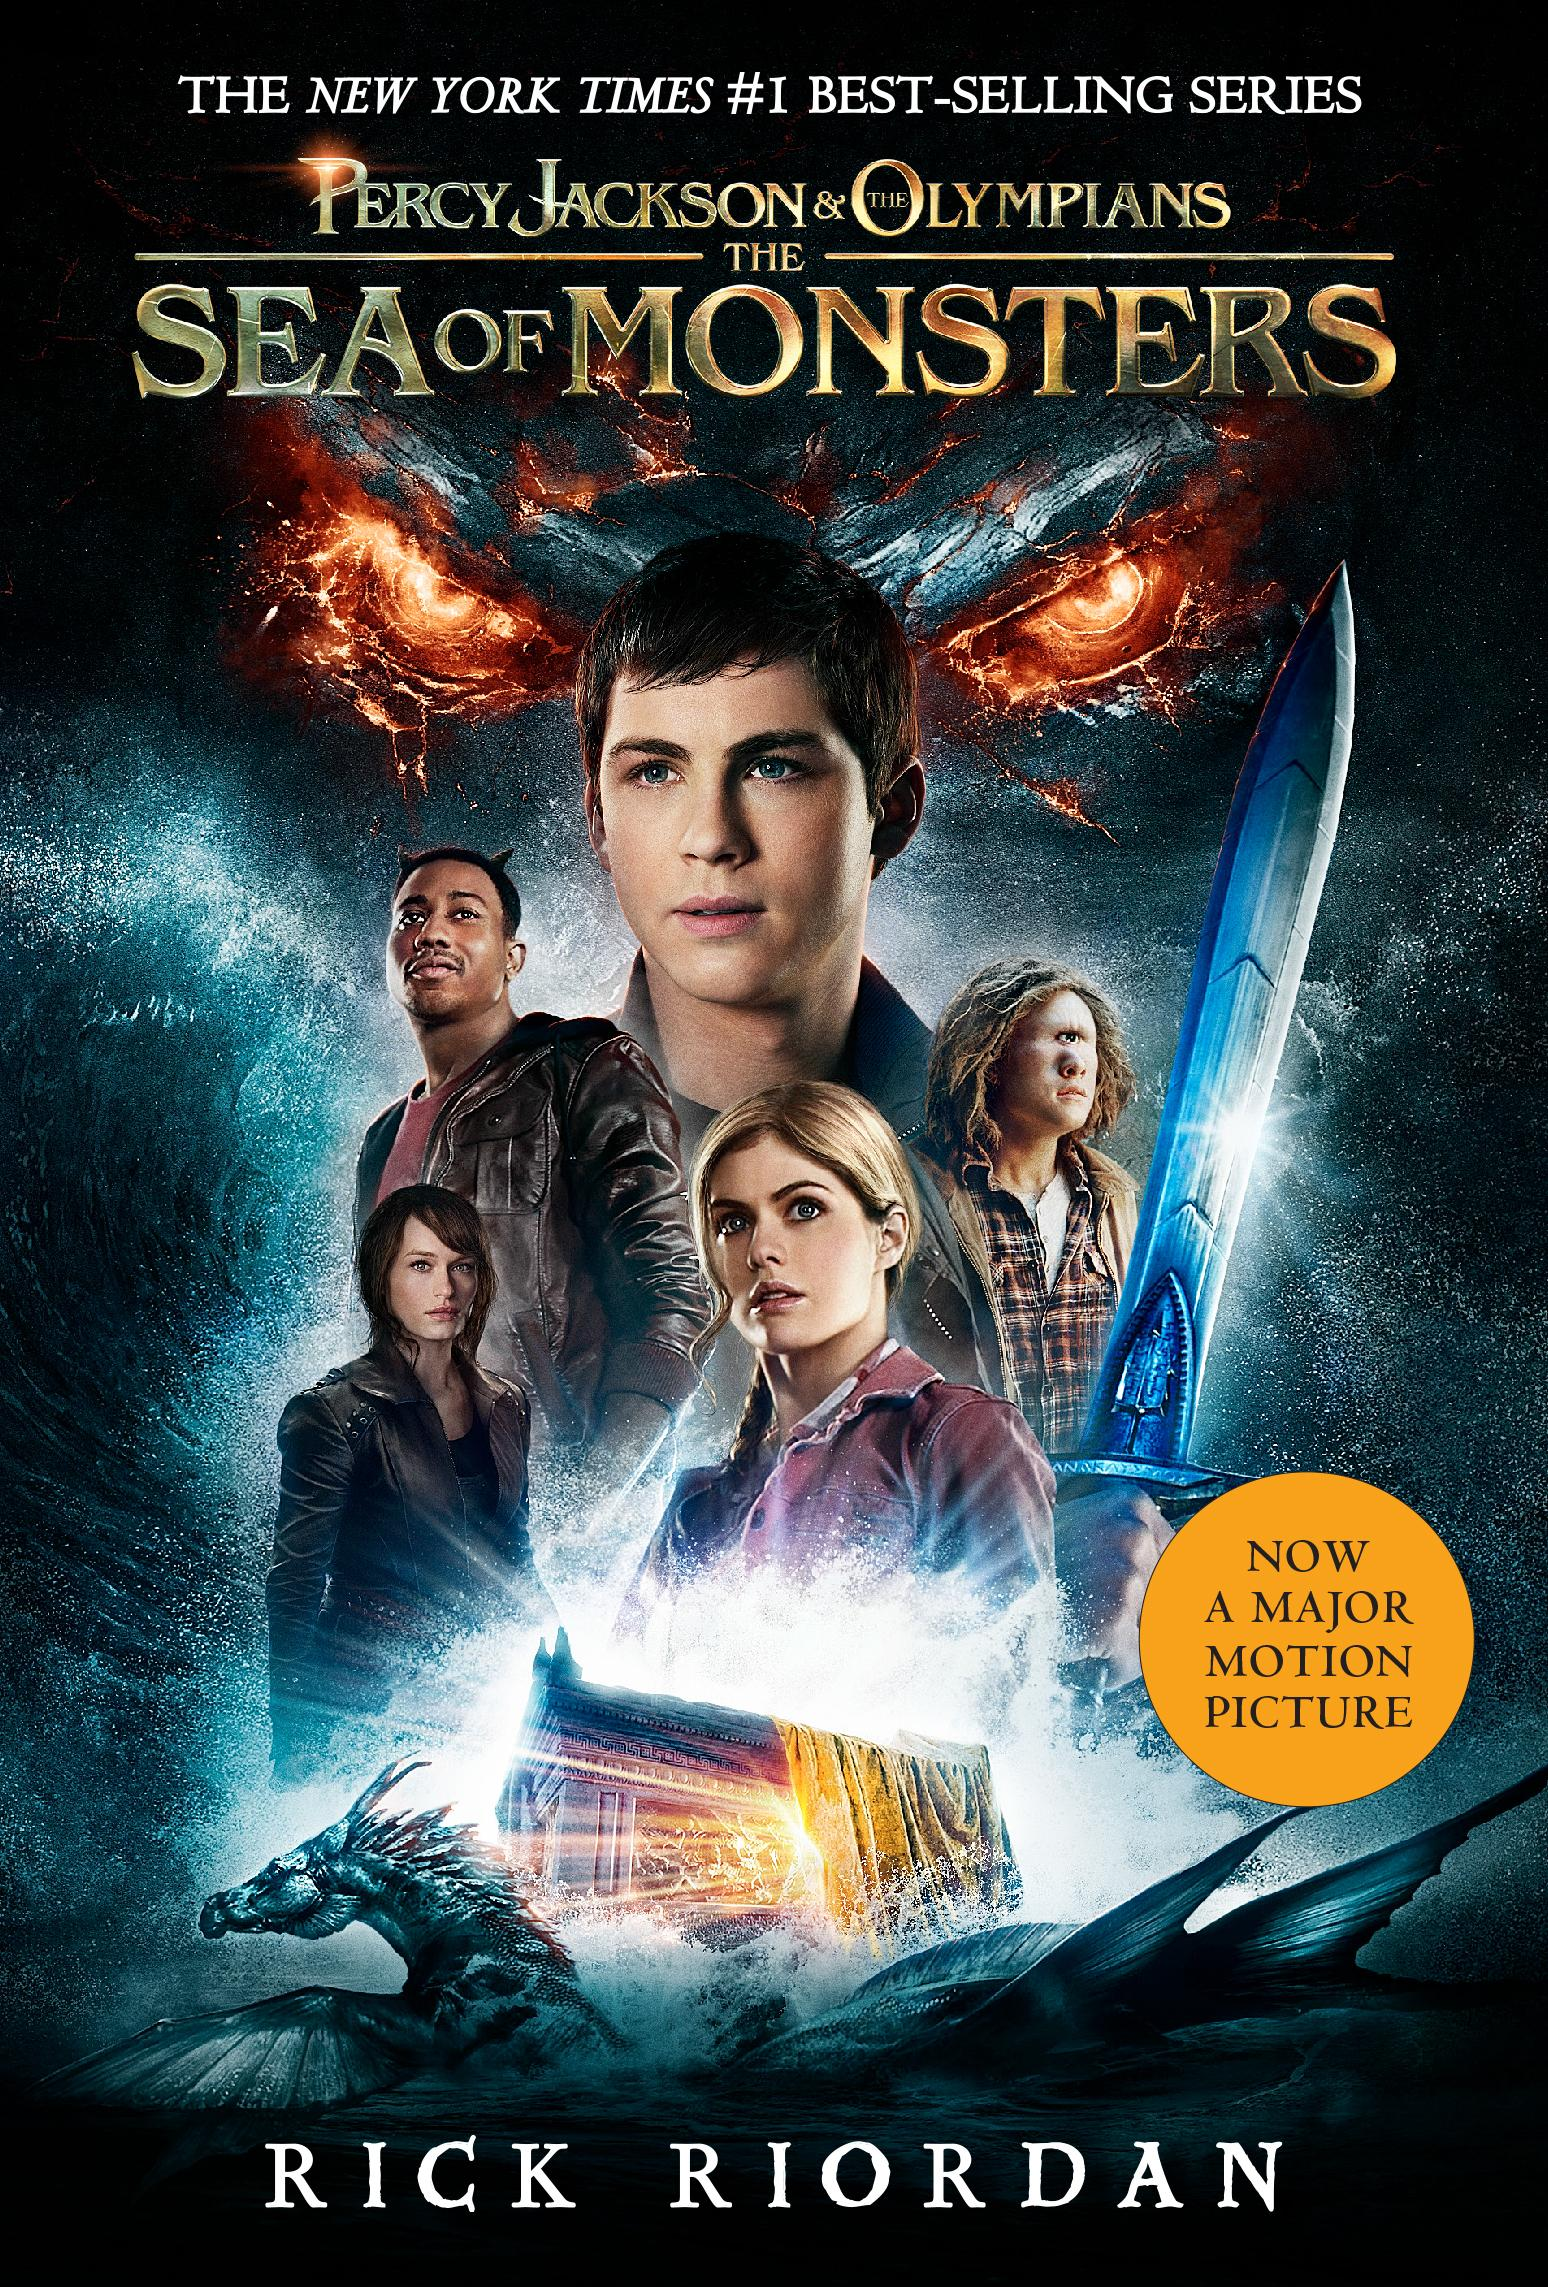 percy jackson sea of monsters Percy jackson: sea of monsters is a film adaptation of the sea of monsters by rick riordanit is the sequel to percy jackson and the olympians: the lightning thief, as well as the second installment in the percy jackson film seriesthe film was produced by karen rosenfelt and mark radcliffe under fox 2000 and directed by thor.